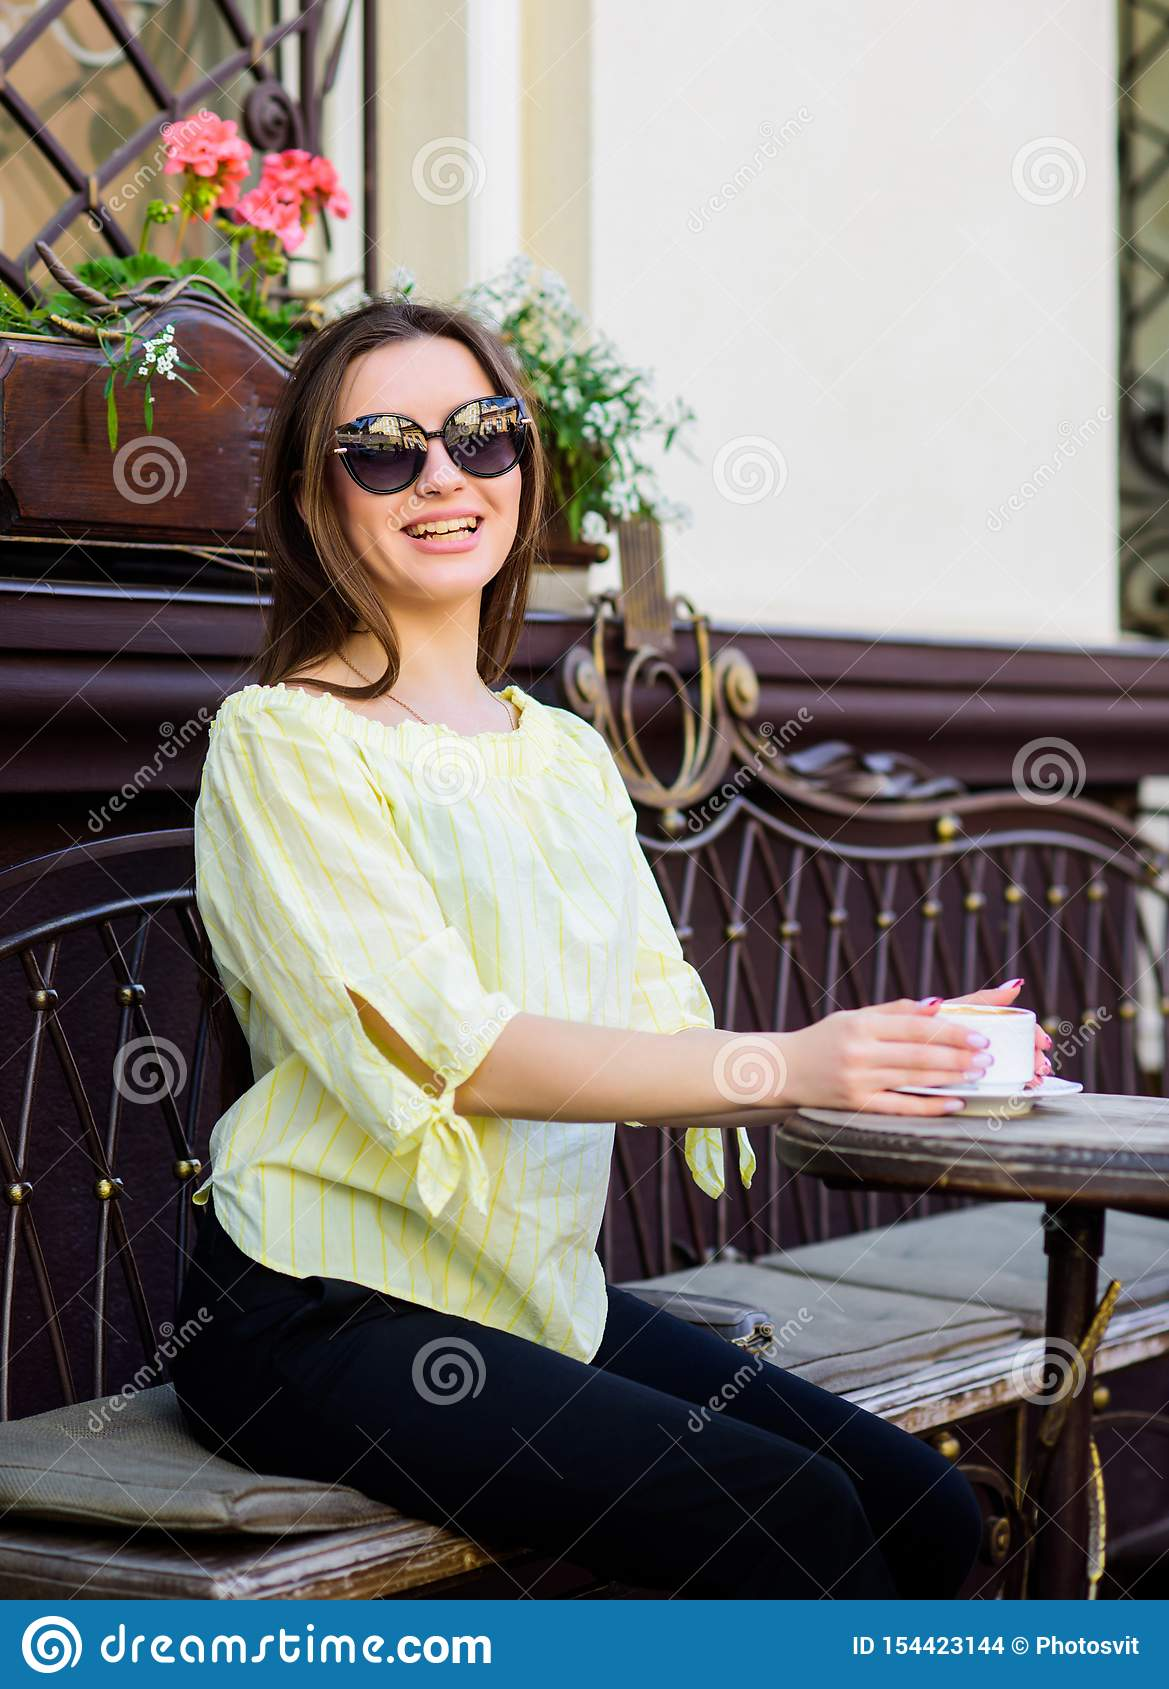 Stylish woman in glasses drink coffee. girl relax in cafe. Business lunch. summer fashion beauty. Meeting in cafe. good